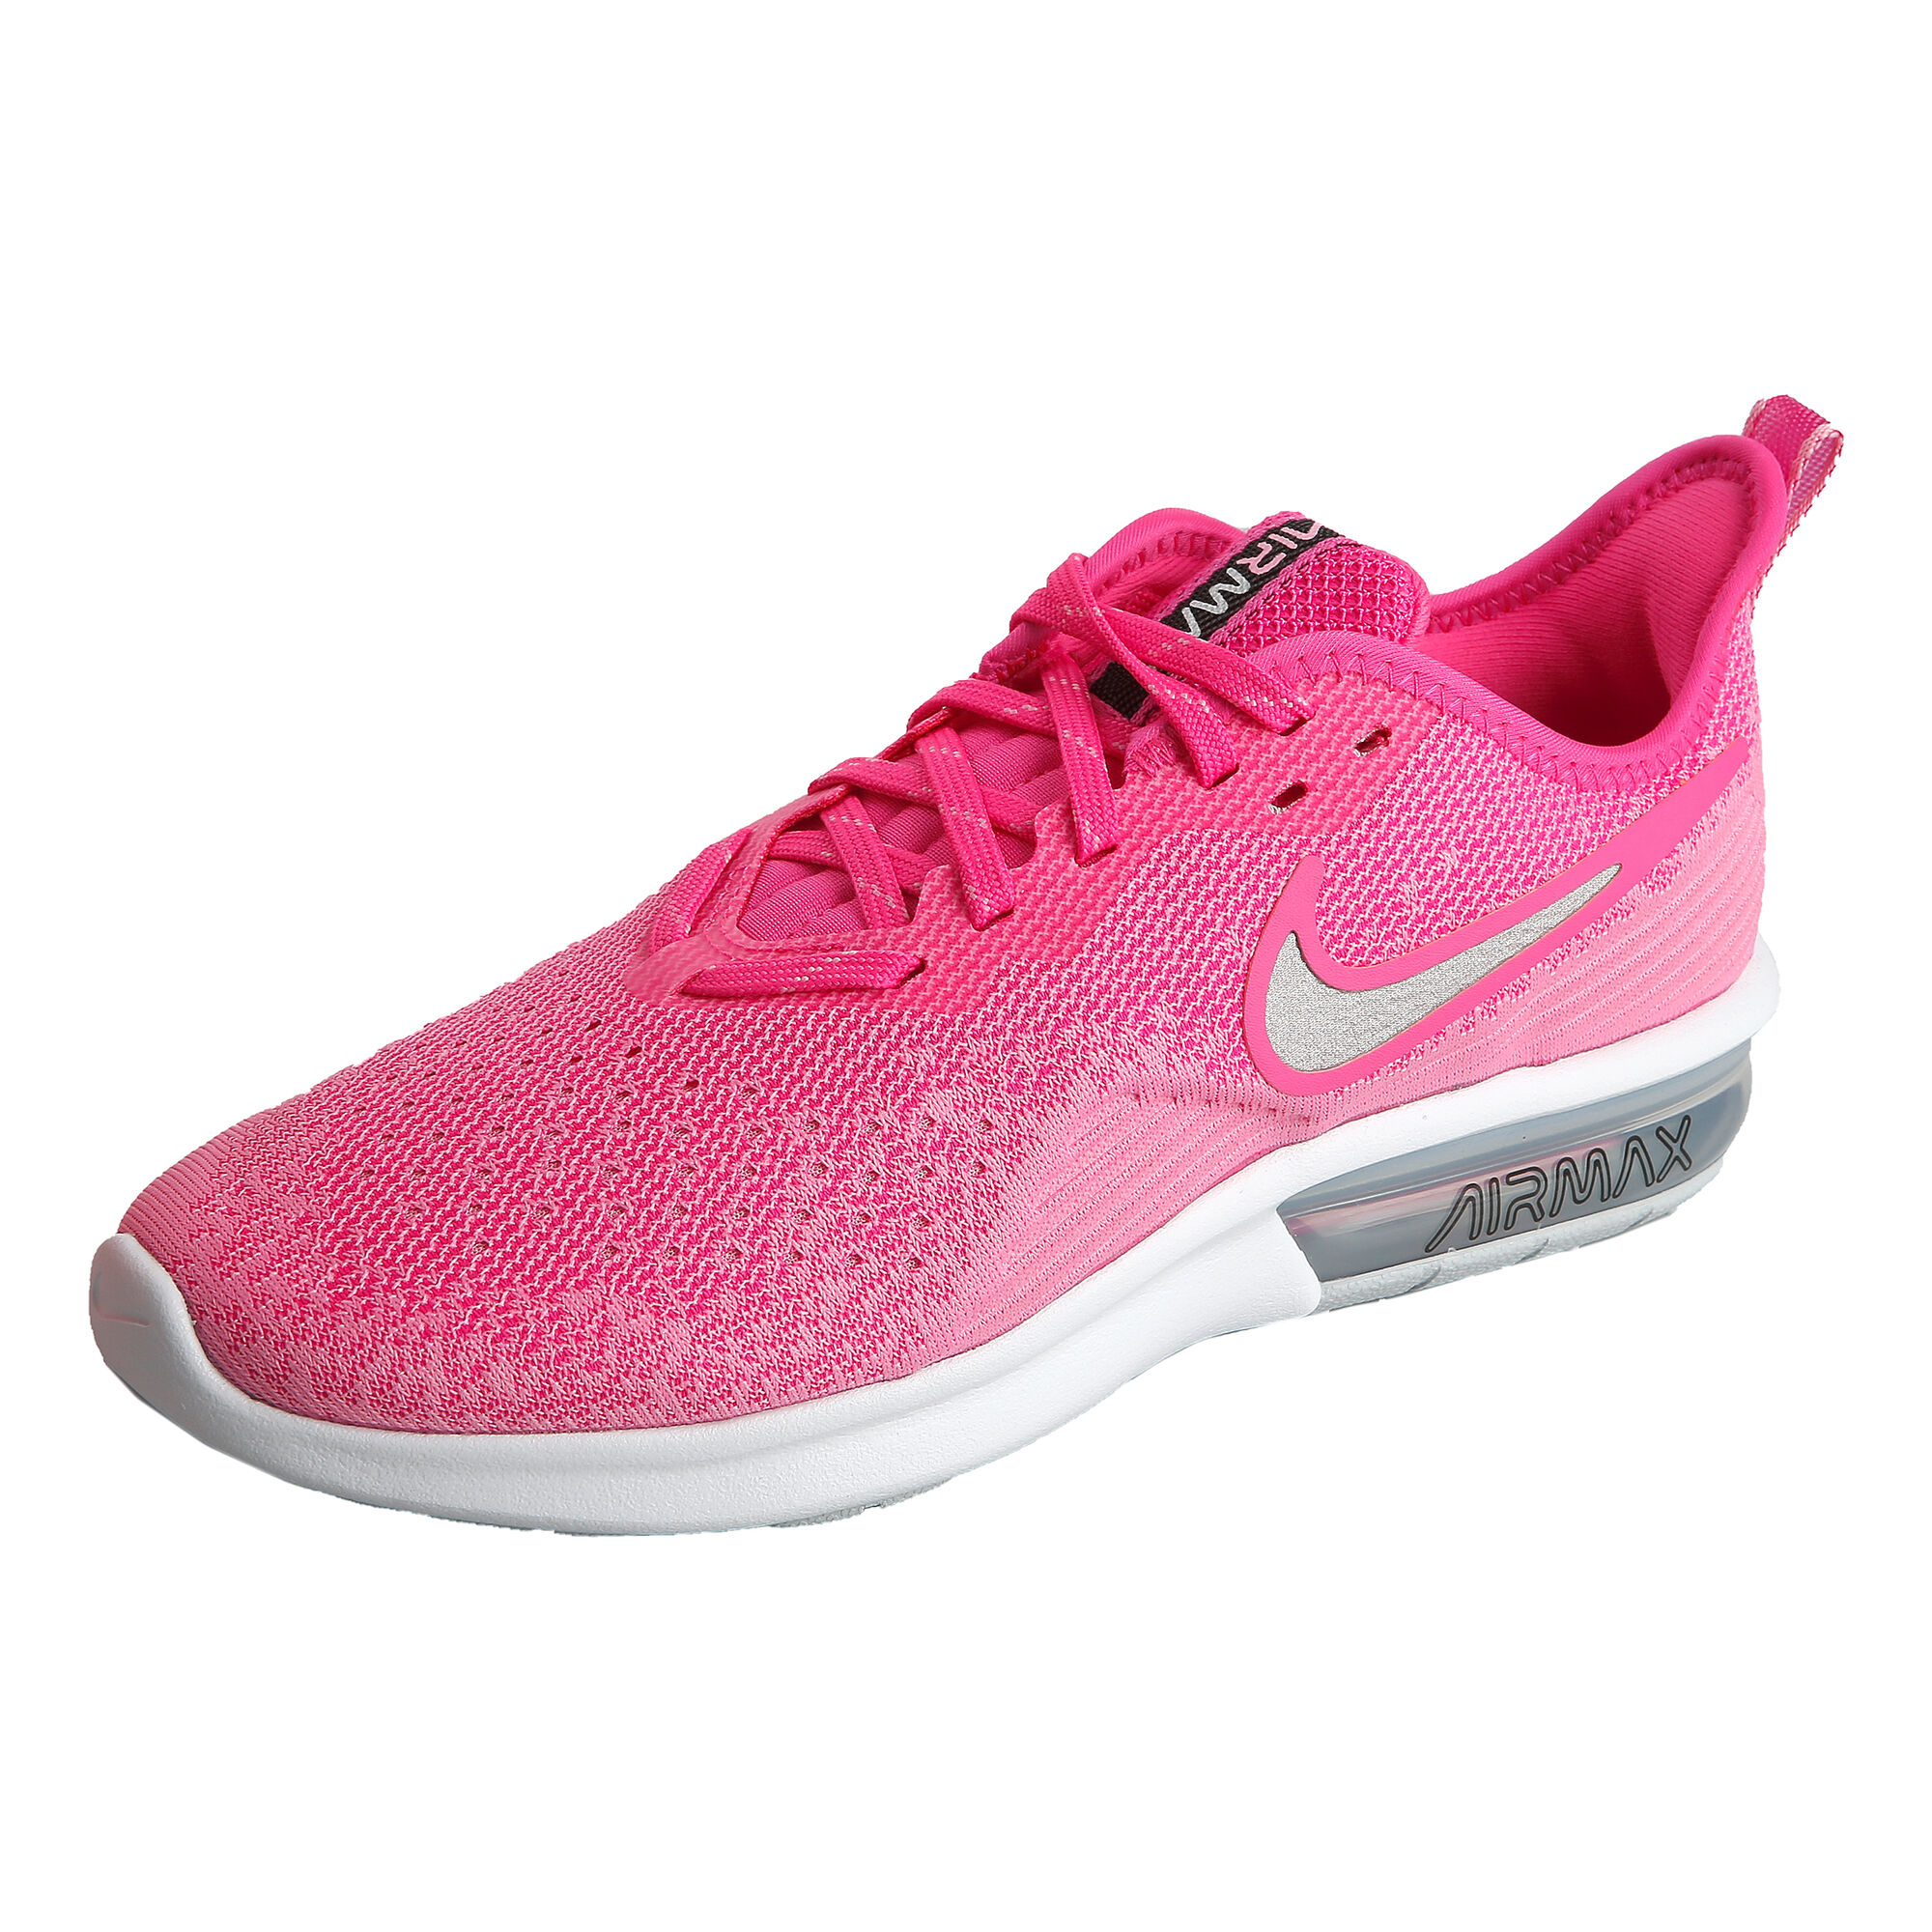 71068f1f4cd077 Nike · Nike · Nike · Nike · Nike · Nike. Air Max Sequent 4 Women ...